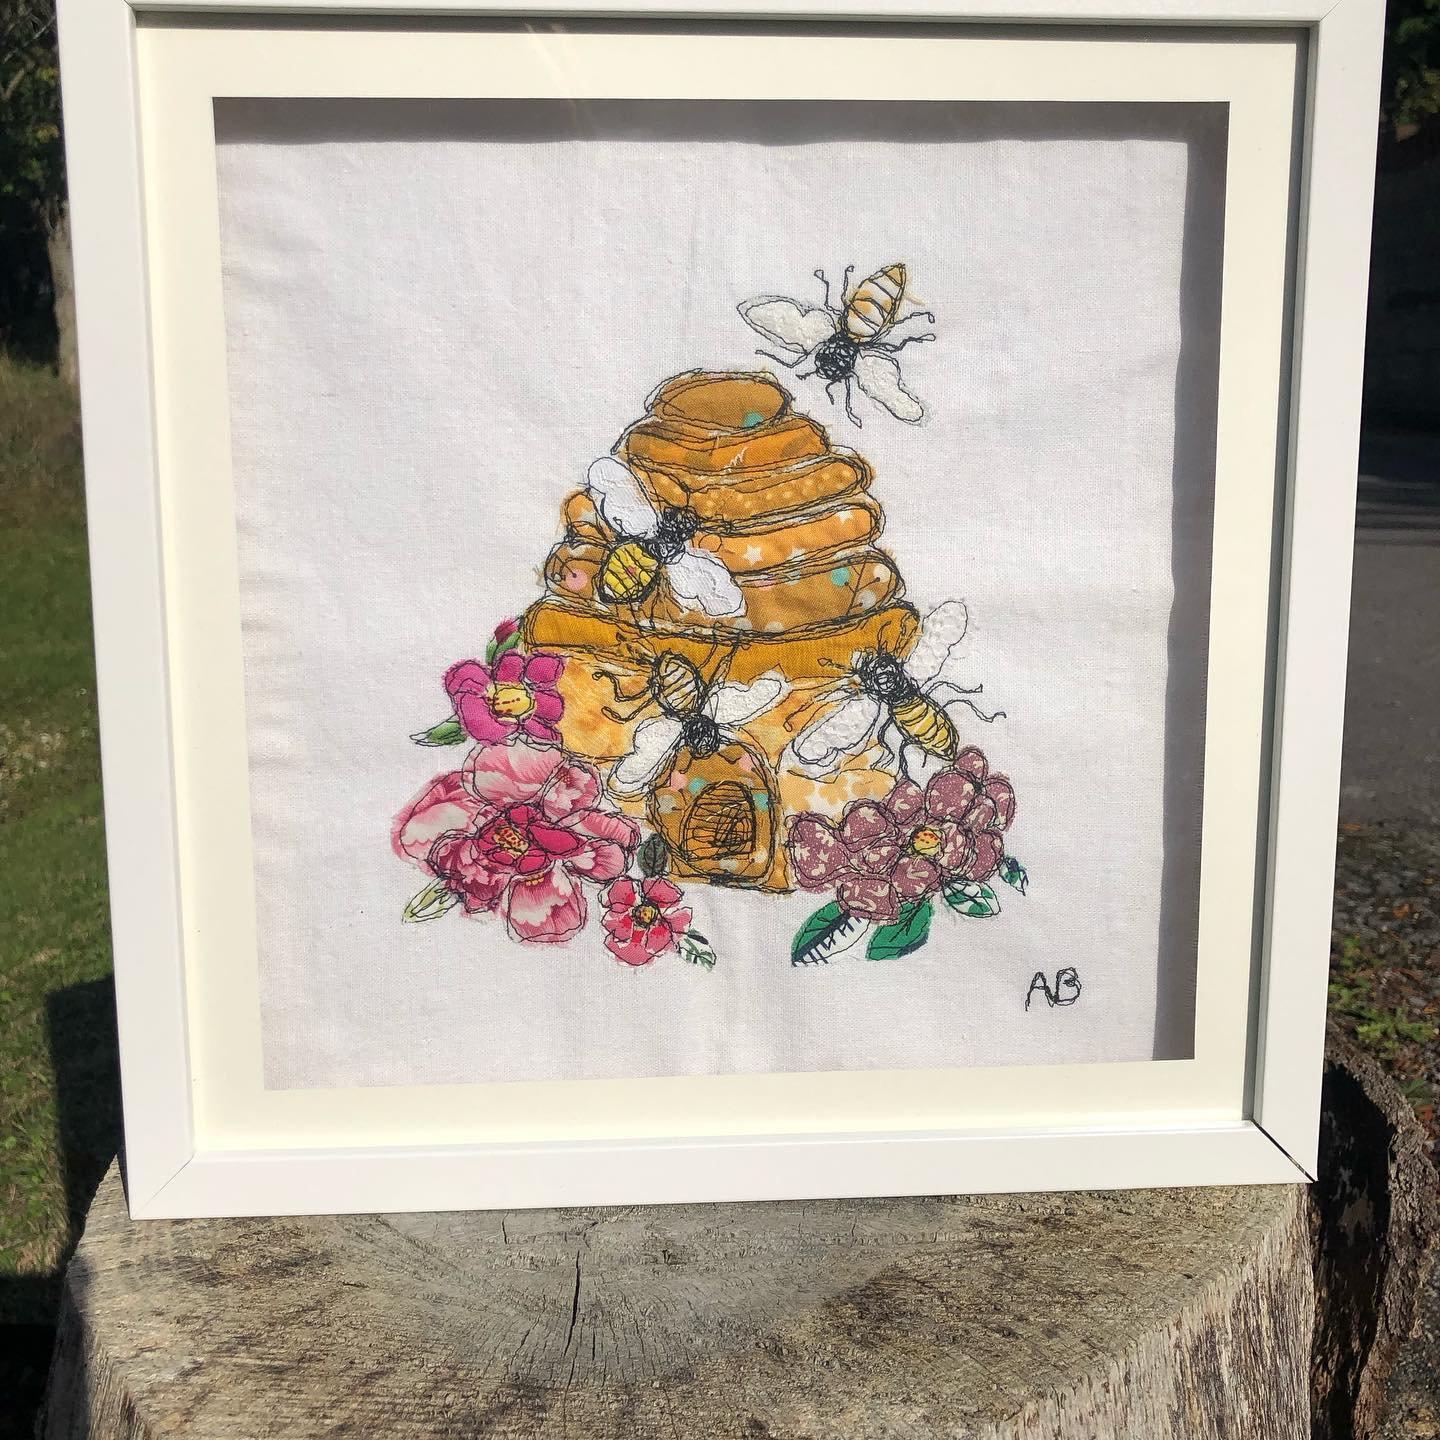 Framed freemotion embroidery using fabric and lace. £65